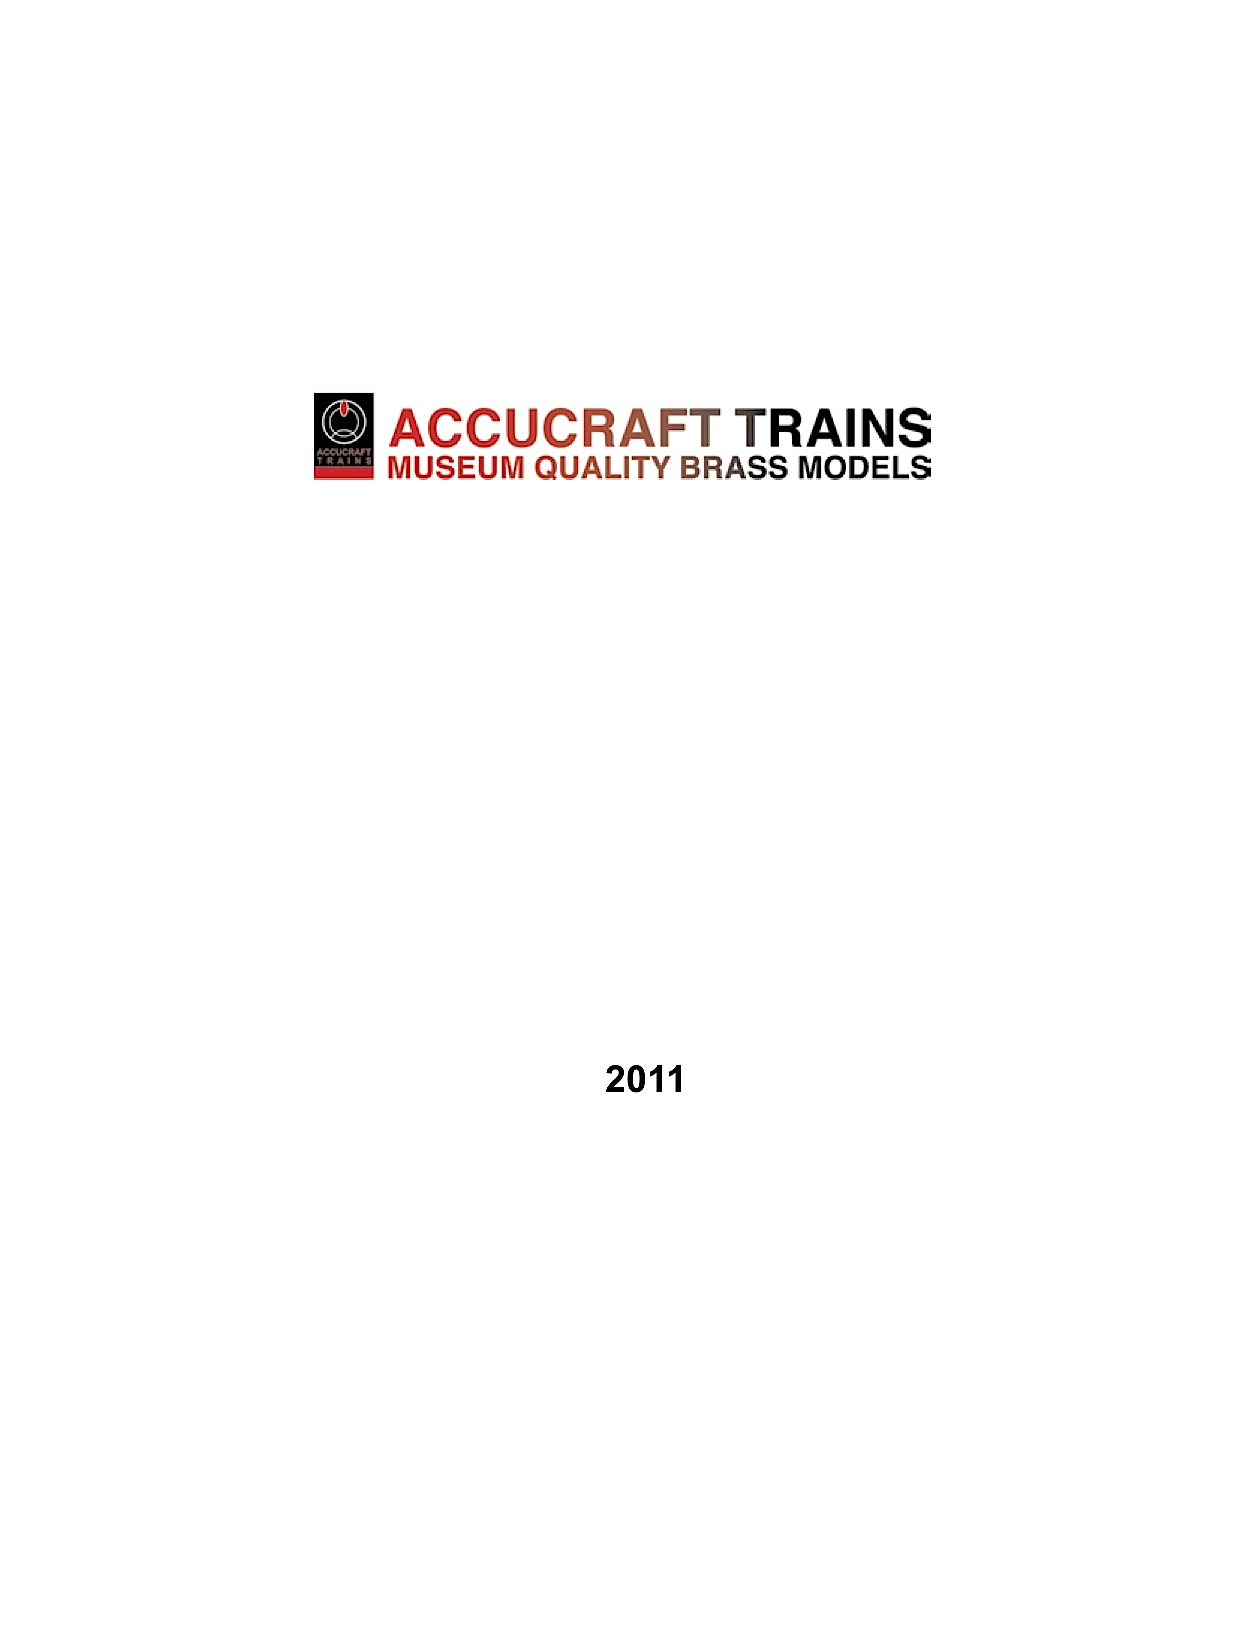 Accucraft Katalog (Catalogue) 2011